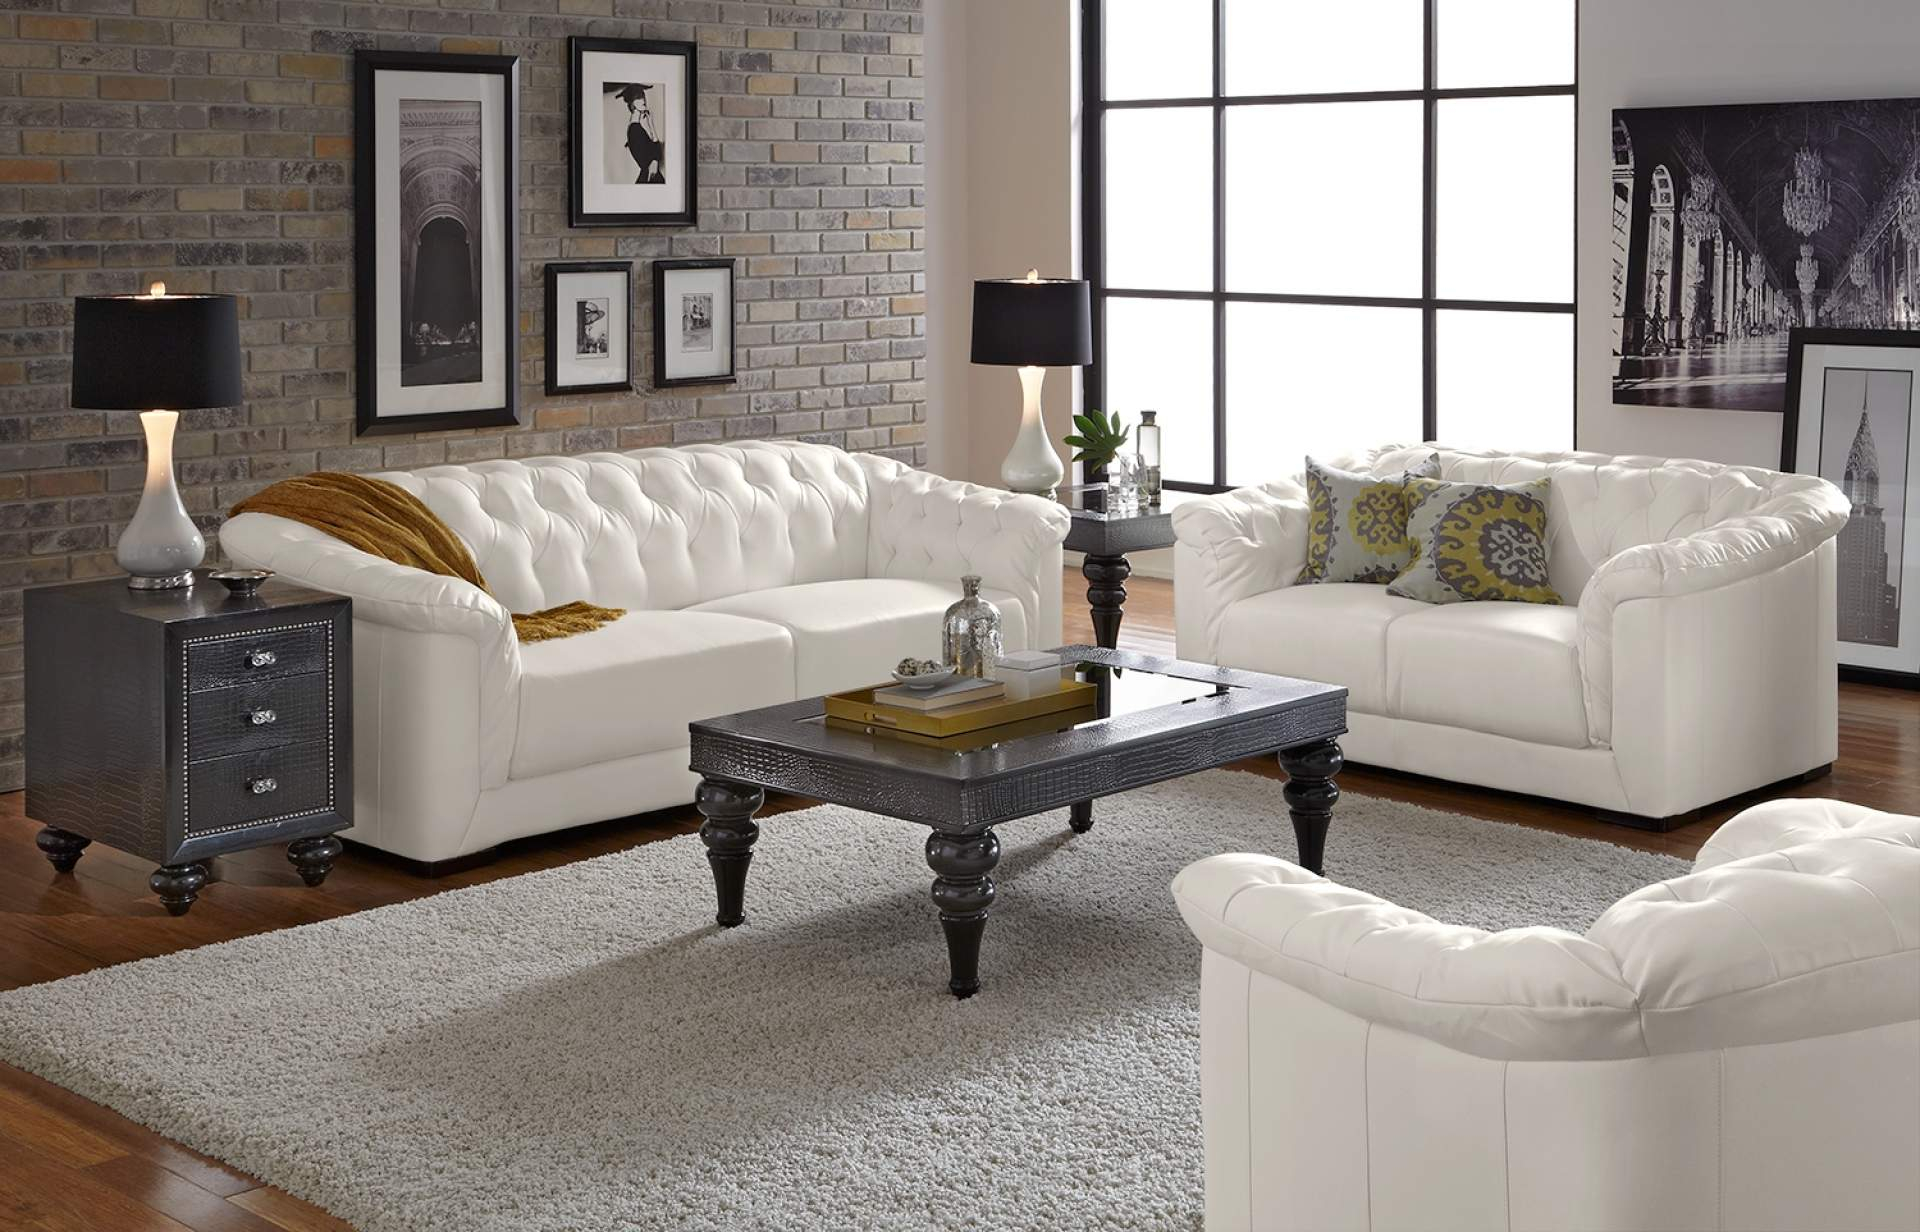 Furniture White Living Room Wall Themes Combined Black within sizing 1920 X 1232